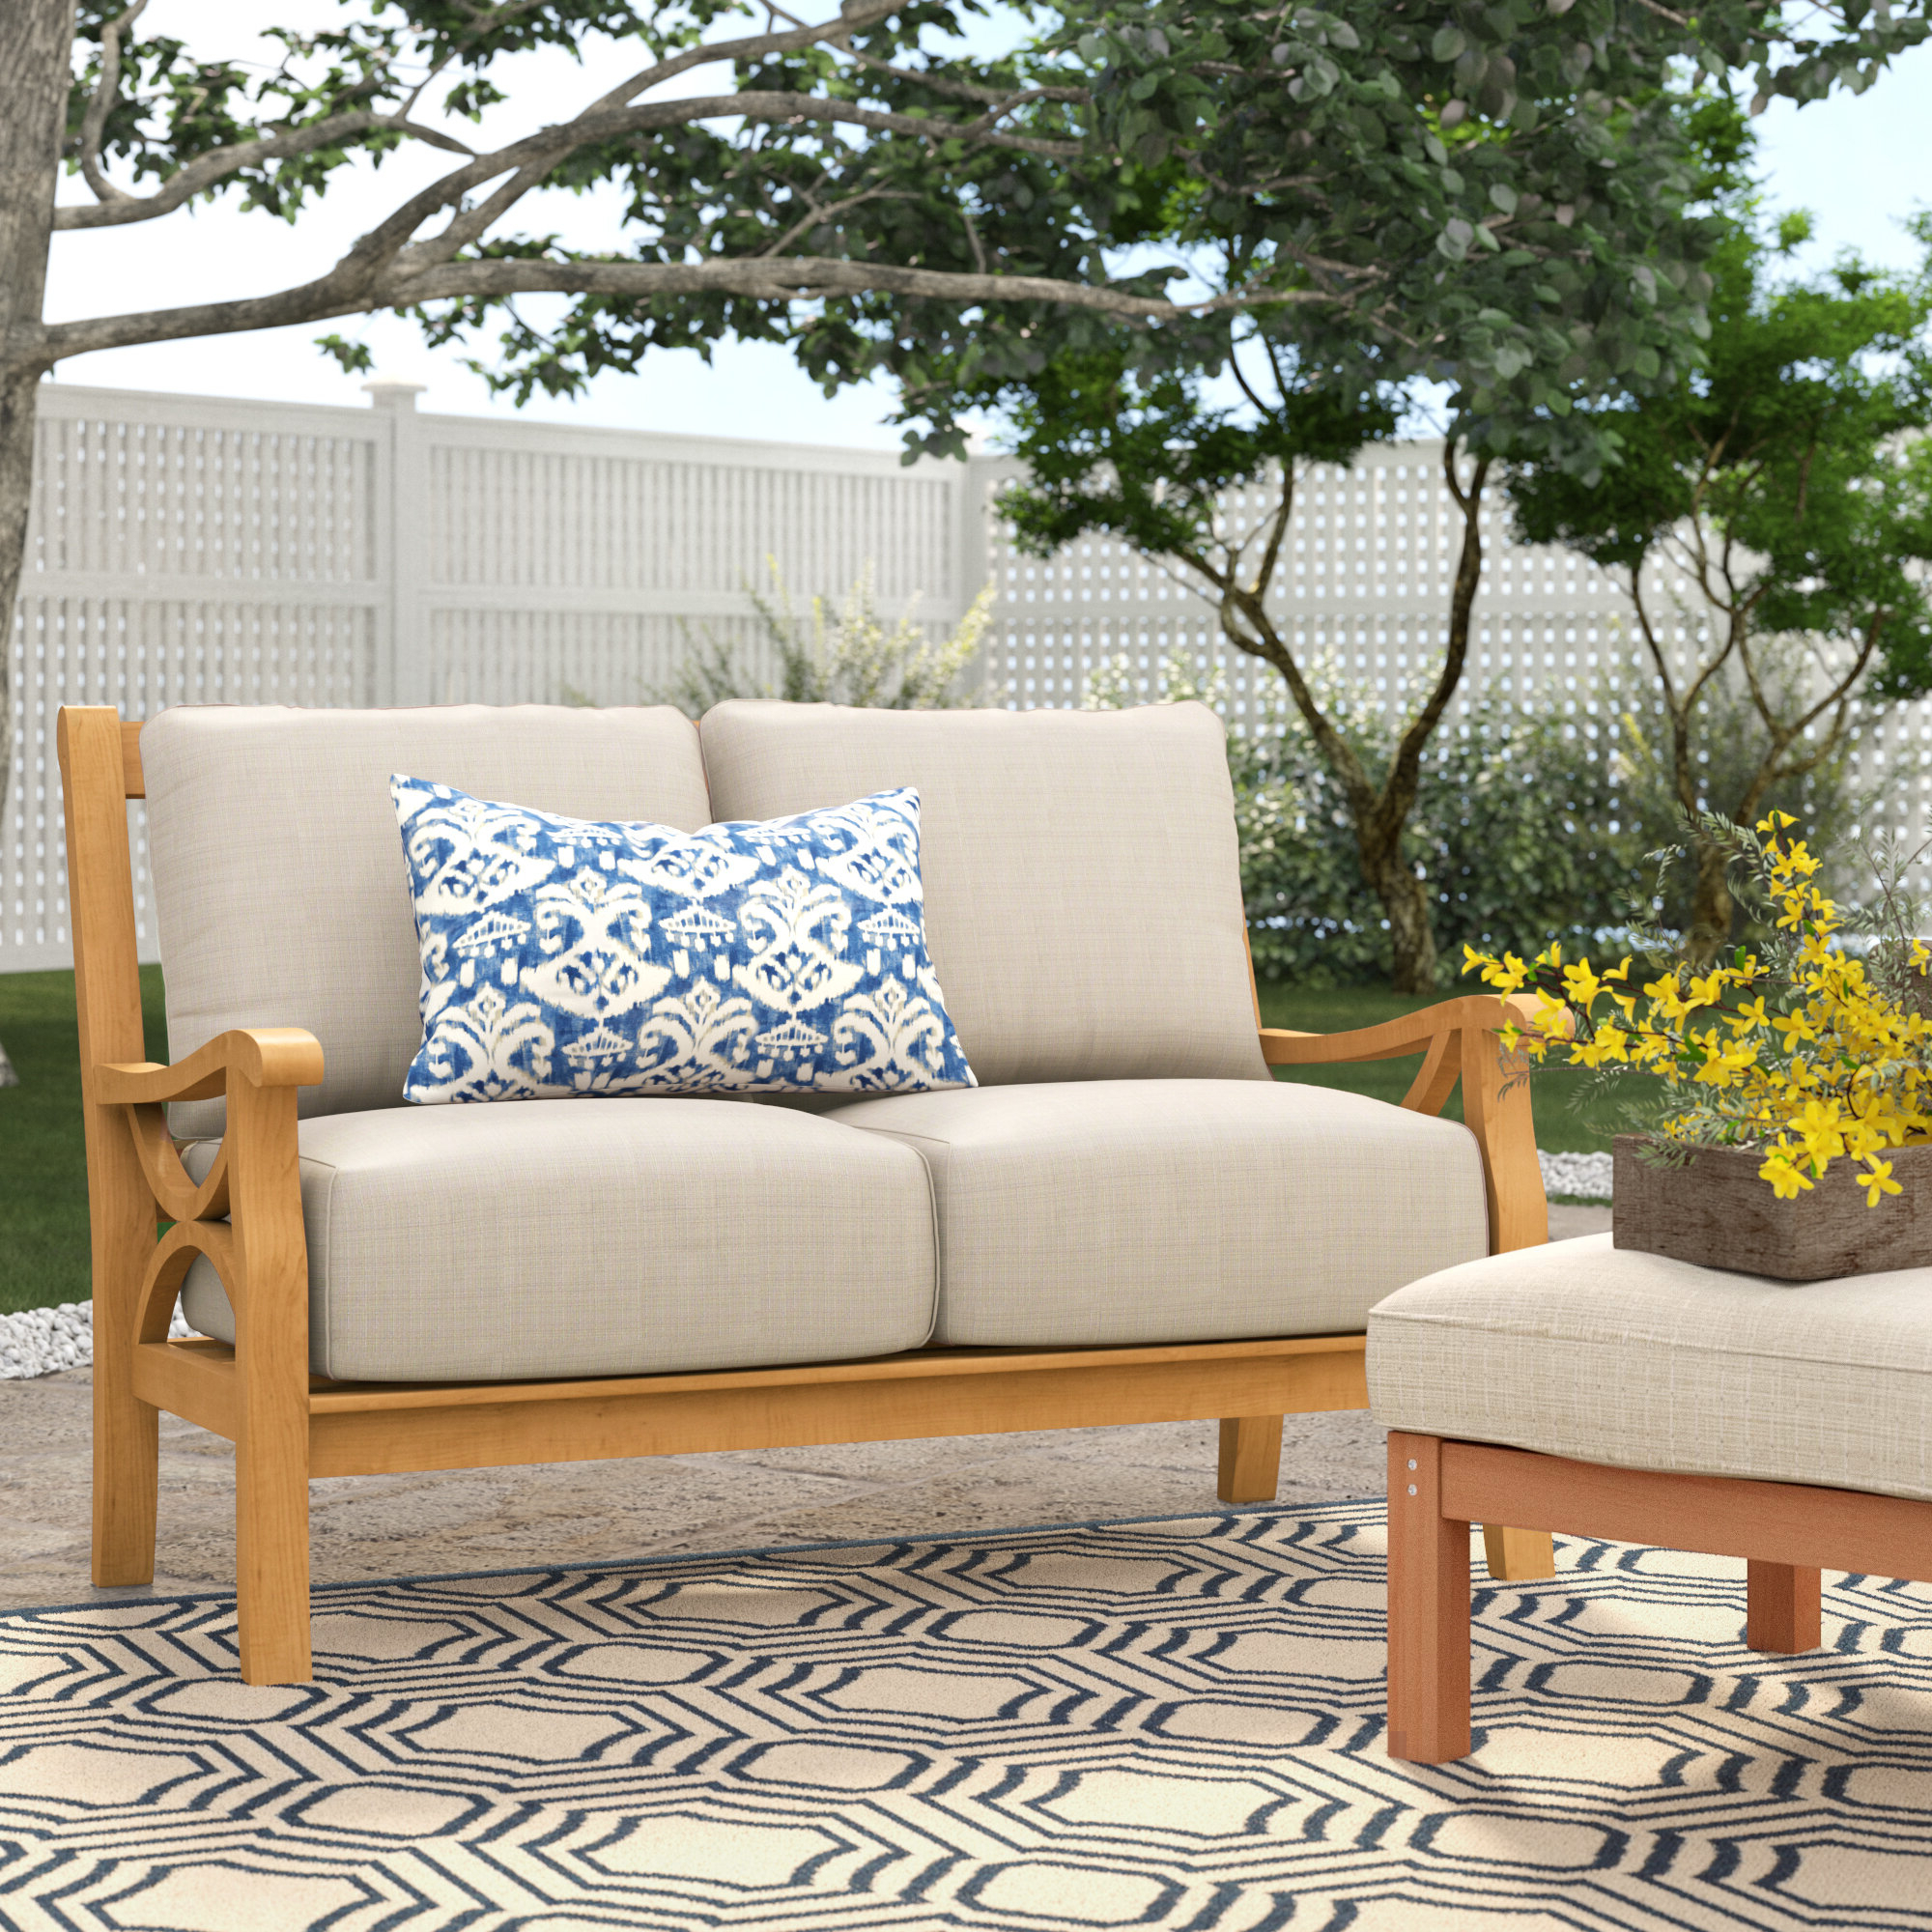 Most Recently Released Lakeland Teak Loveseats With Cushions Within Brunswick Teak Loveseat With Cushions (View 14 of 20)